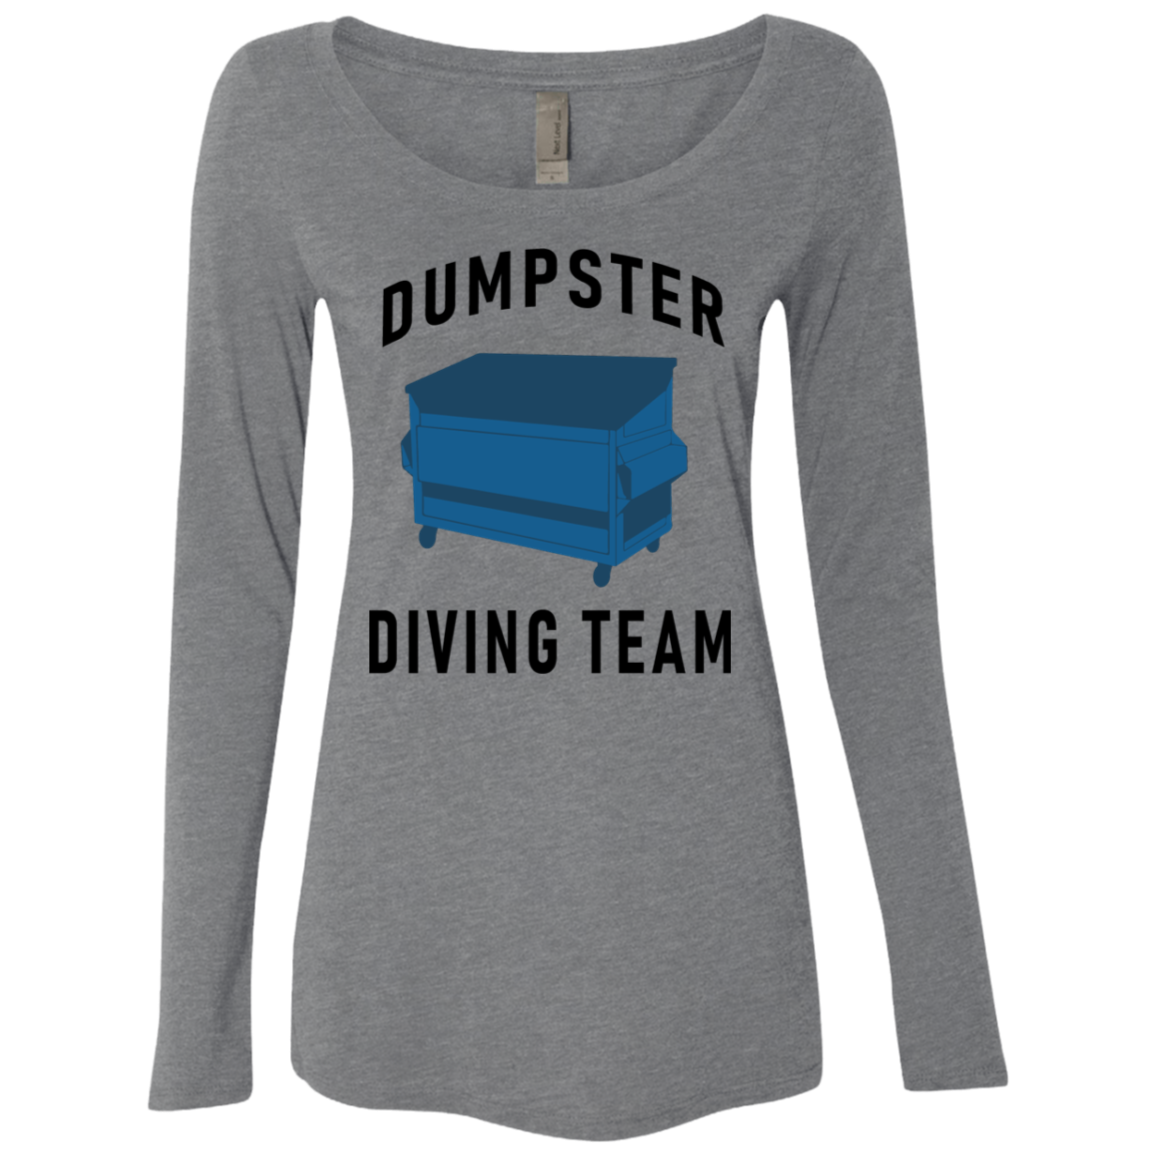 Dumpster Diving Team Women's Long Sleeve Tee